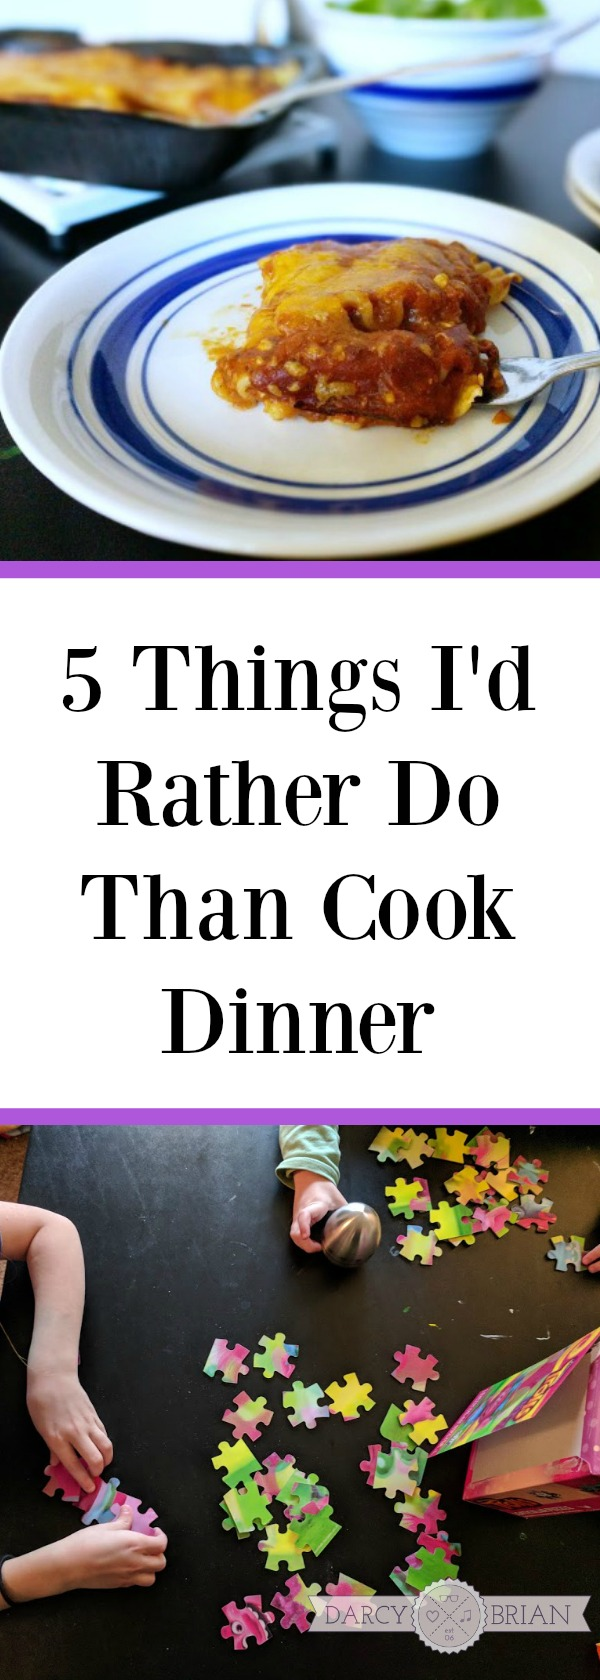 [AD] Some days are too busy to spend a lot of time in the kitchen cooking dinner. Here are 5 Things I'd Rather Do Than Cook Dinner plus an easy meal solution when you have one of those crazy busy nights. #CountOnCor #OvenTimeTips